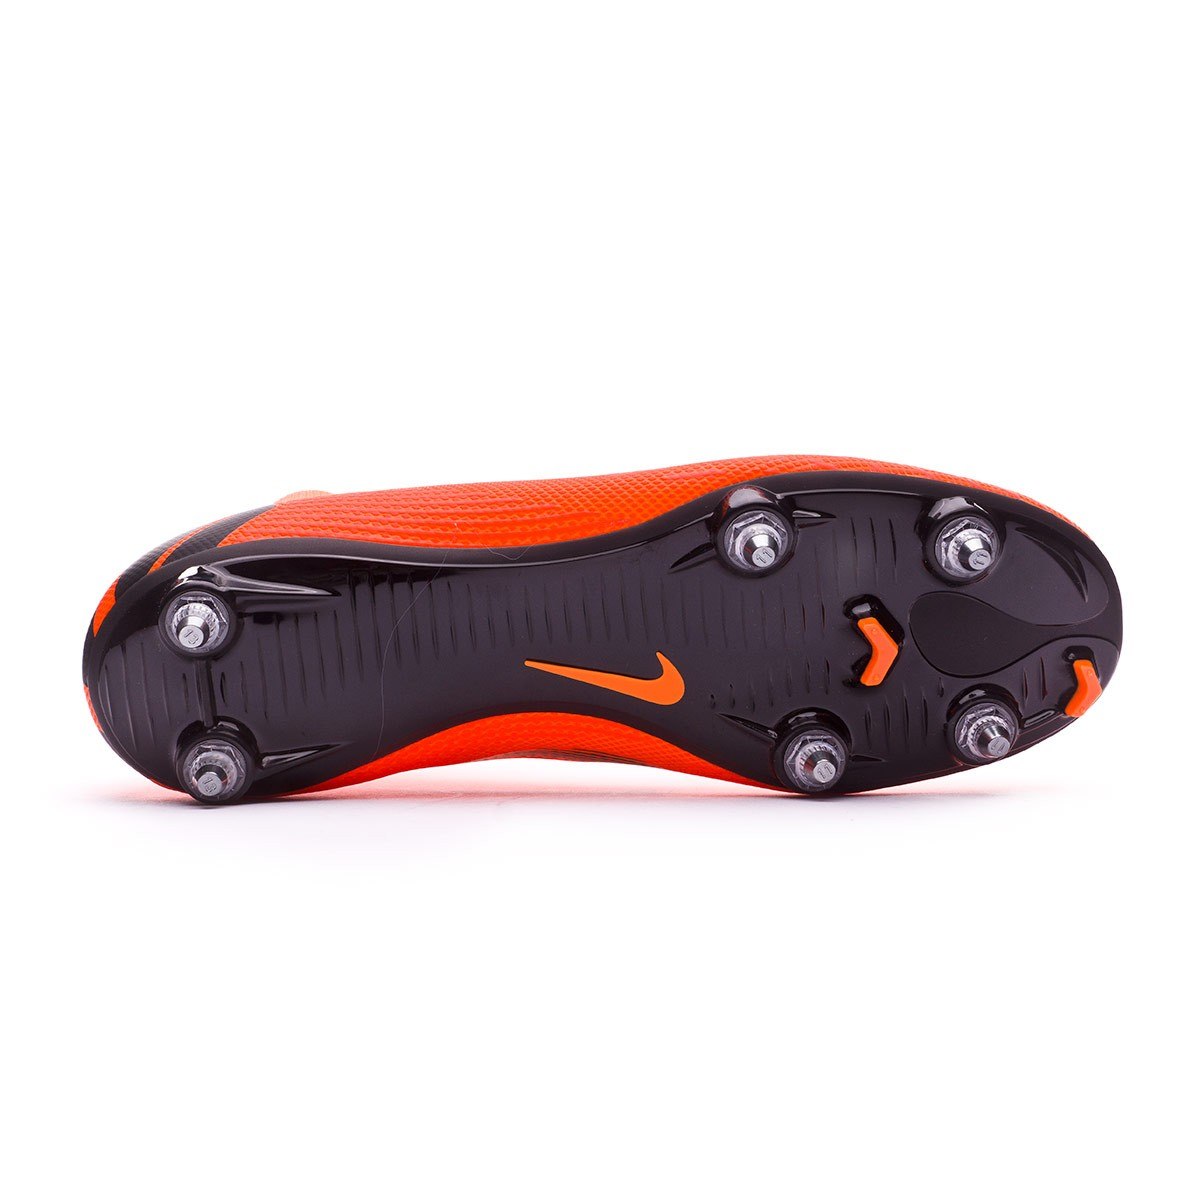 f89bf425e Football Boots Nike Mercurial Superfly VI Academy SG-Pro Total orange-Black- Volt - Football store Fútbol Emotion